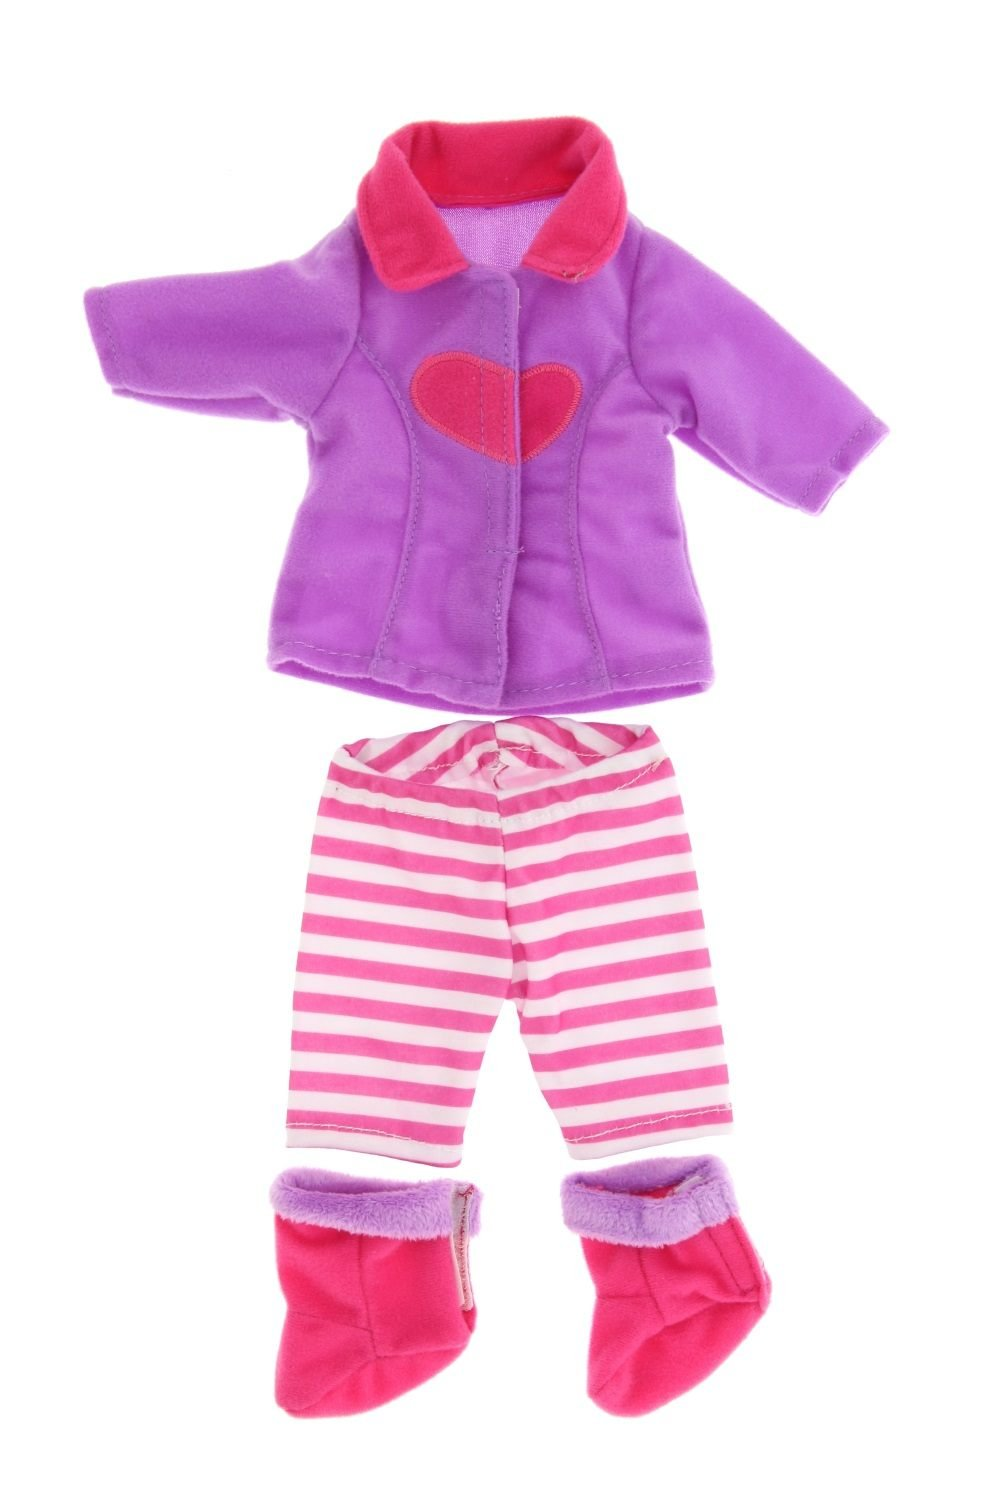 Baby Alive Pretty Lil Fashion Clothing Set Features 3 Outfits Makes Perfect Accessories for your 30-35cm Dolls